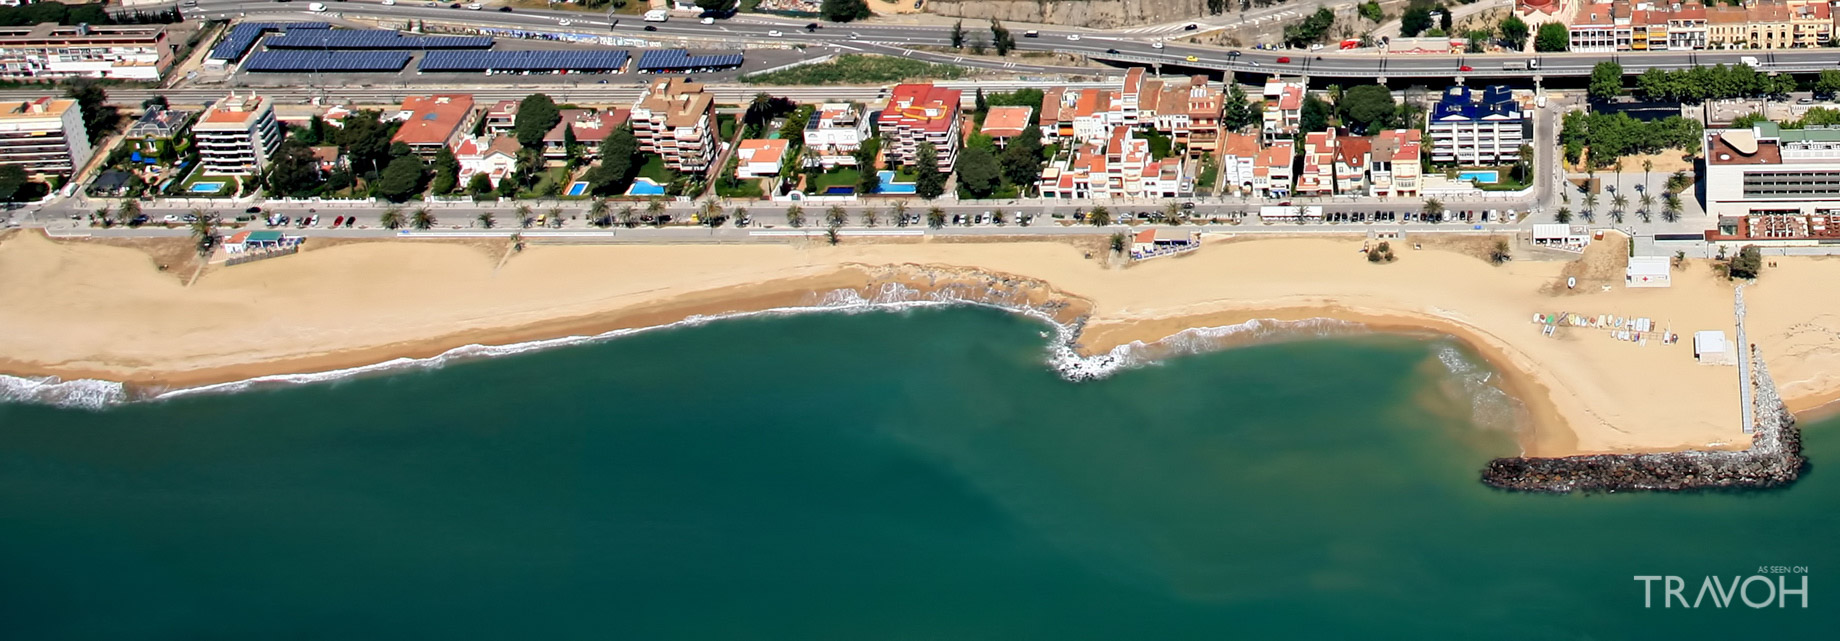 Caldetes Beach - Caldes d'Estrac - Exploring 10 of the Top Beaches in Barcelona, Spain